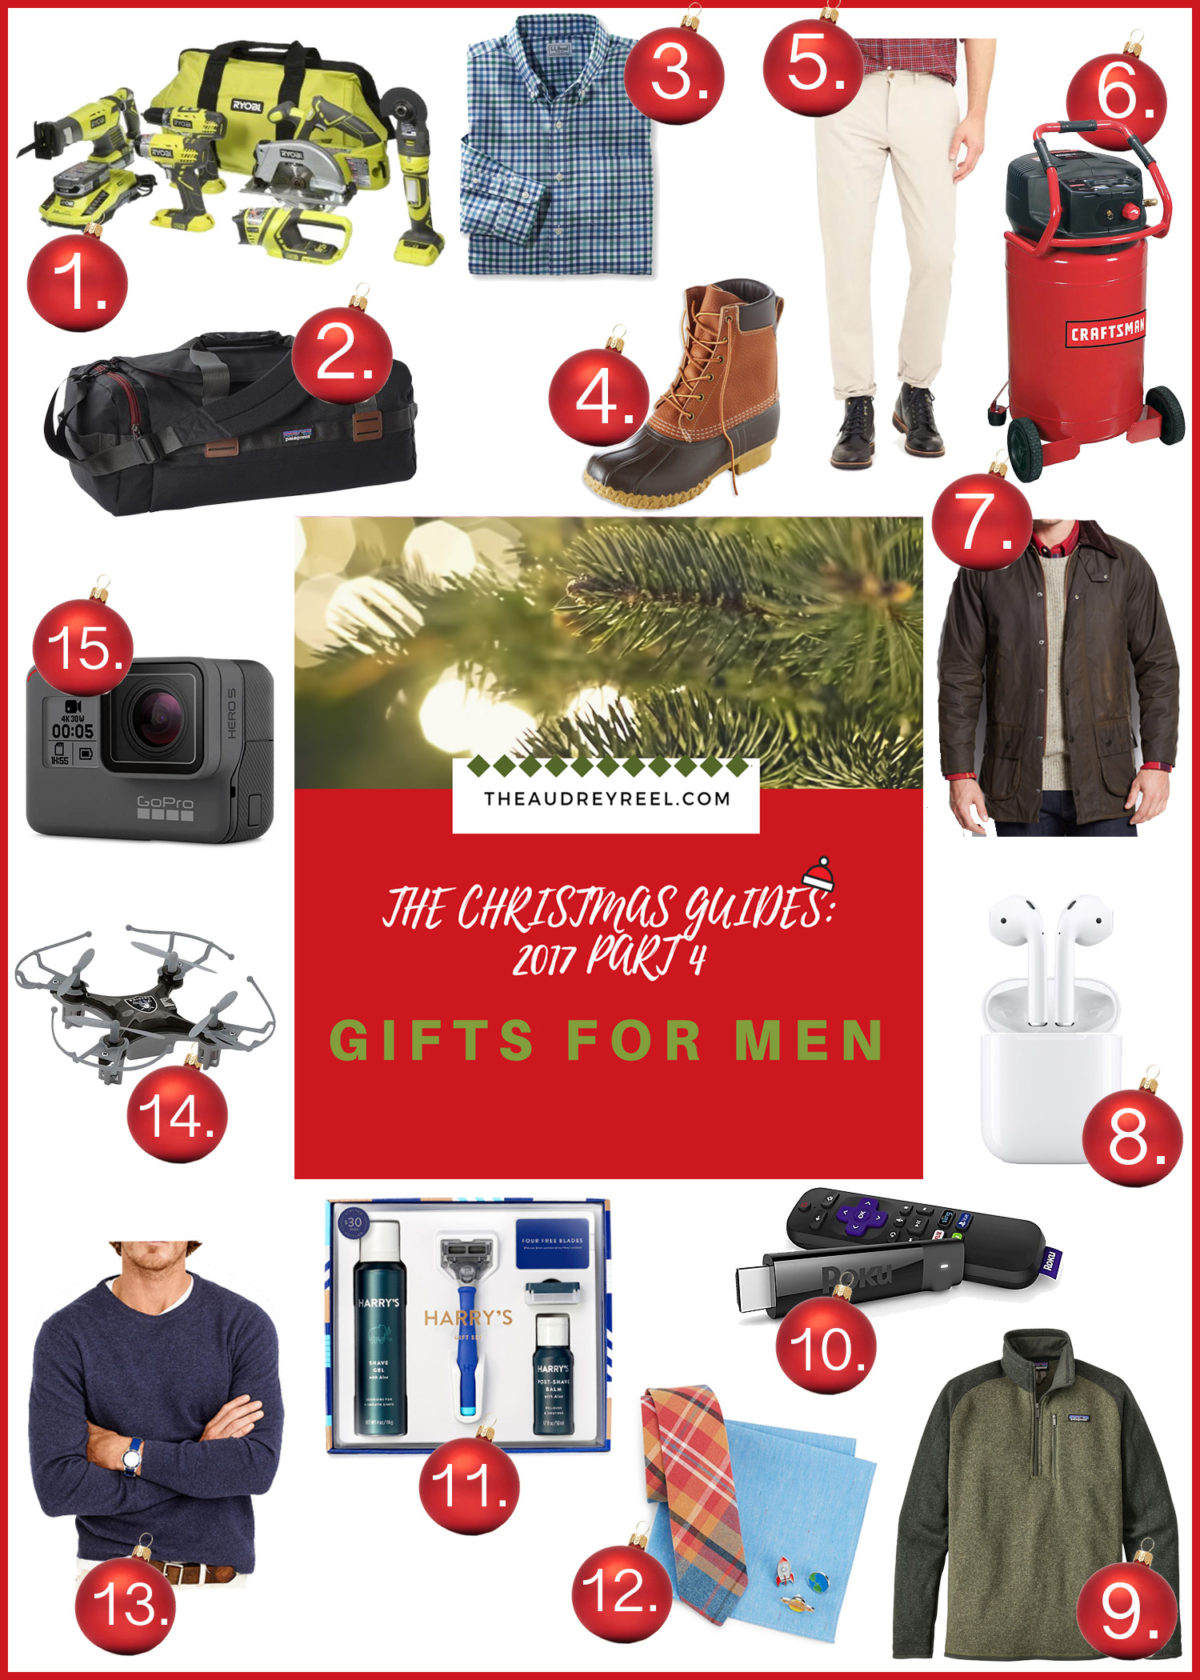 THEAUDREYREEL.COM gifts for men Christmas 2017 Gift Ideas Gift guide